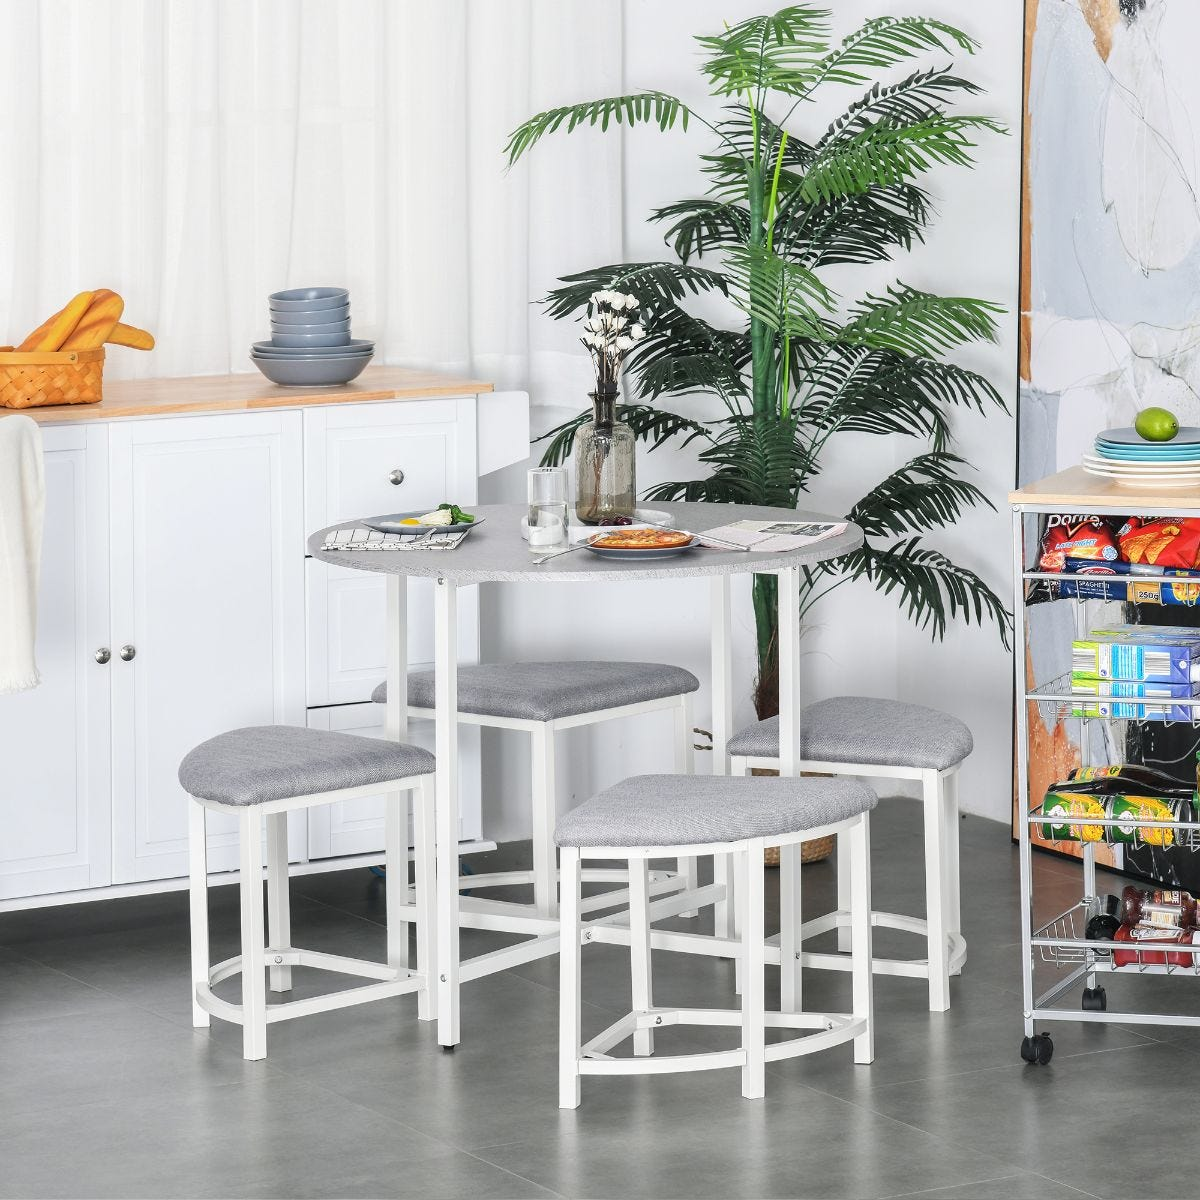 5 Piece Modern Round Dining Table Set with 4 Upholstered Stools Grey And White